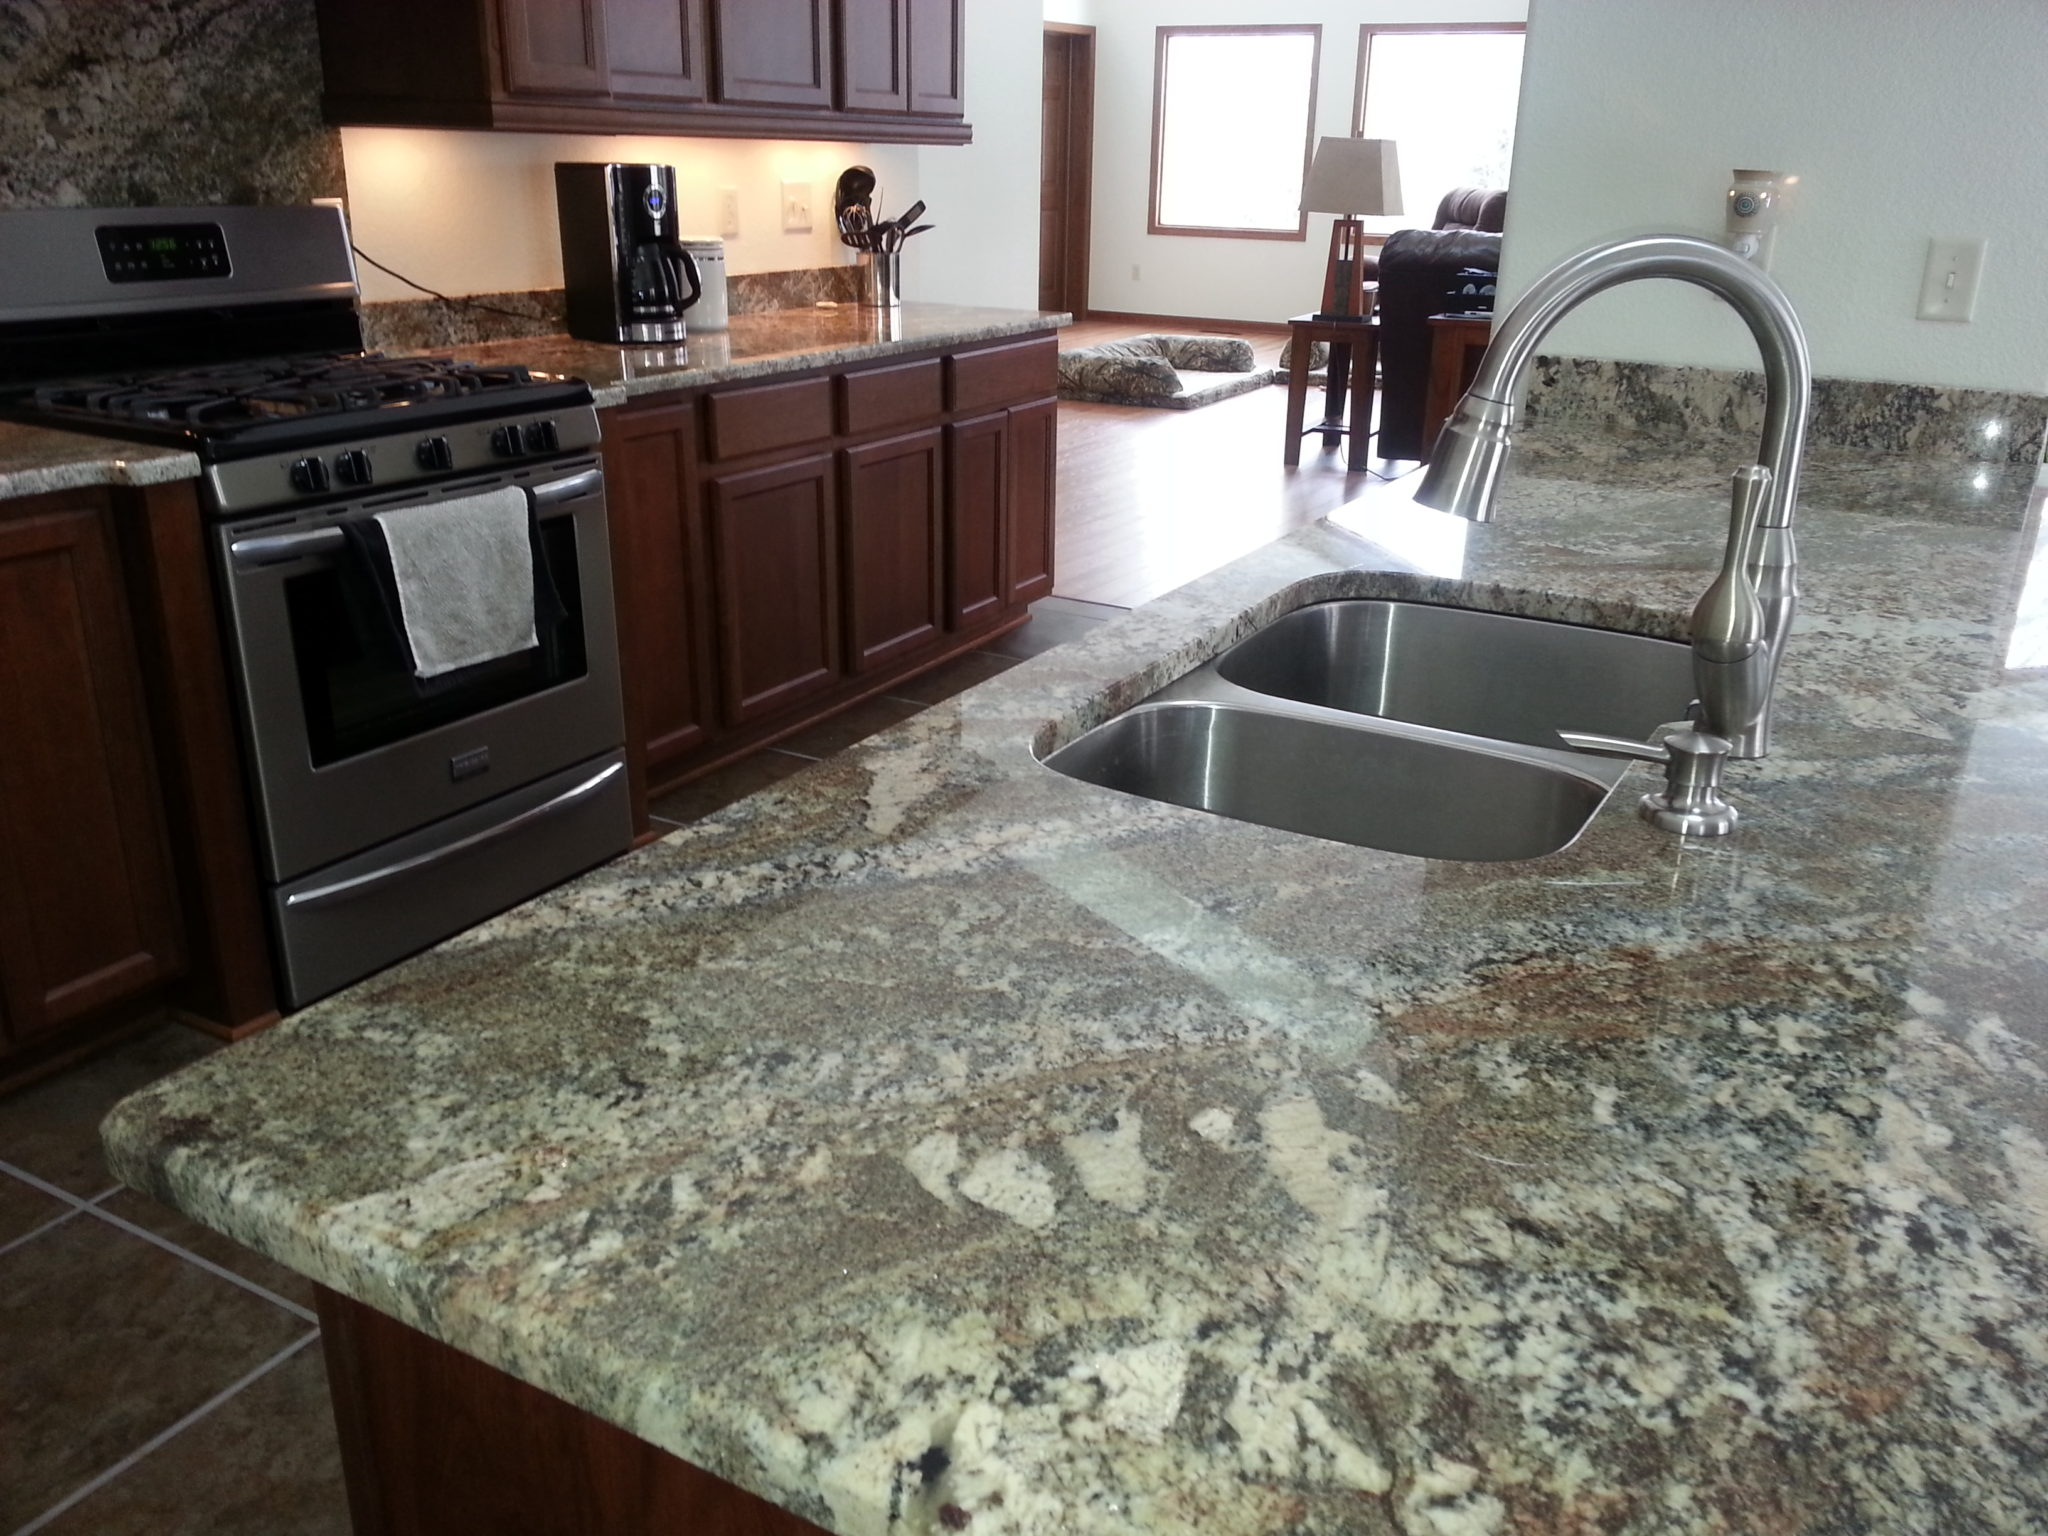 Kitchens With Granite Denver Kitchen Countertops Denver Shower Doors Denver Granite